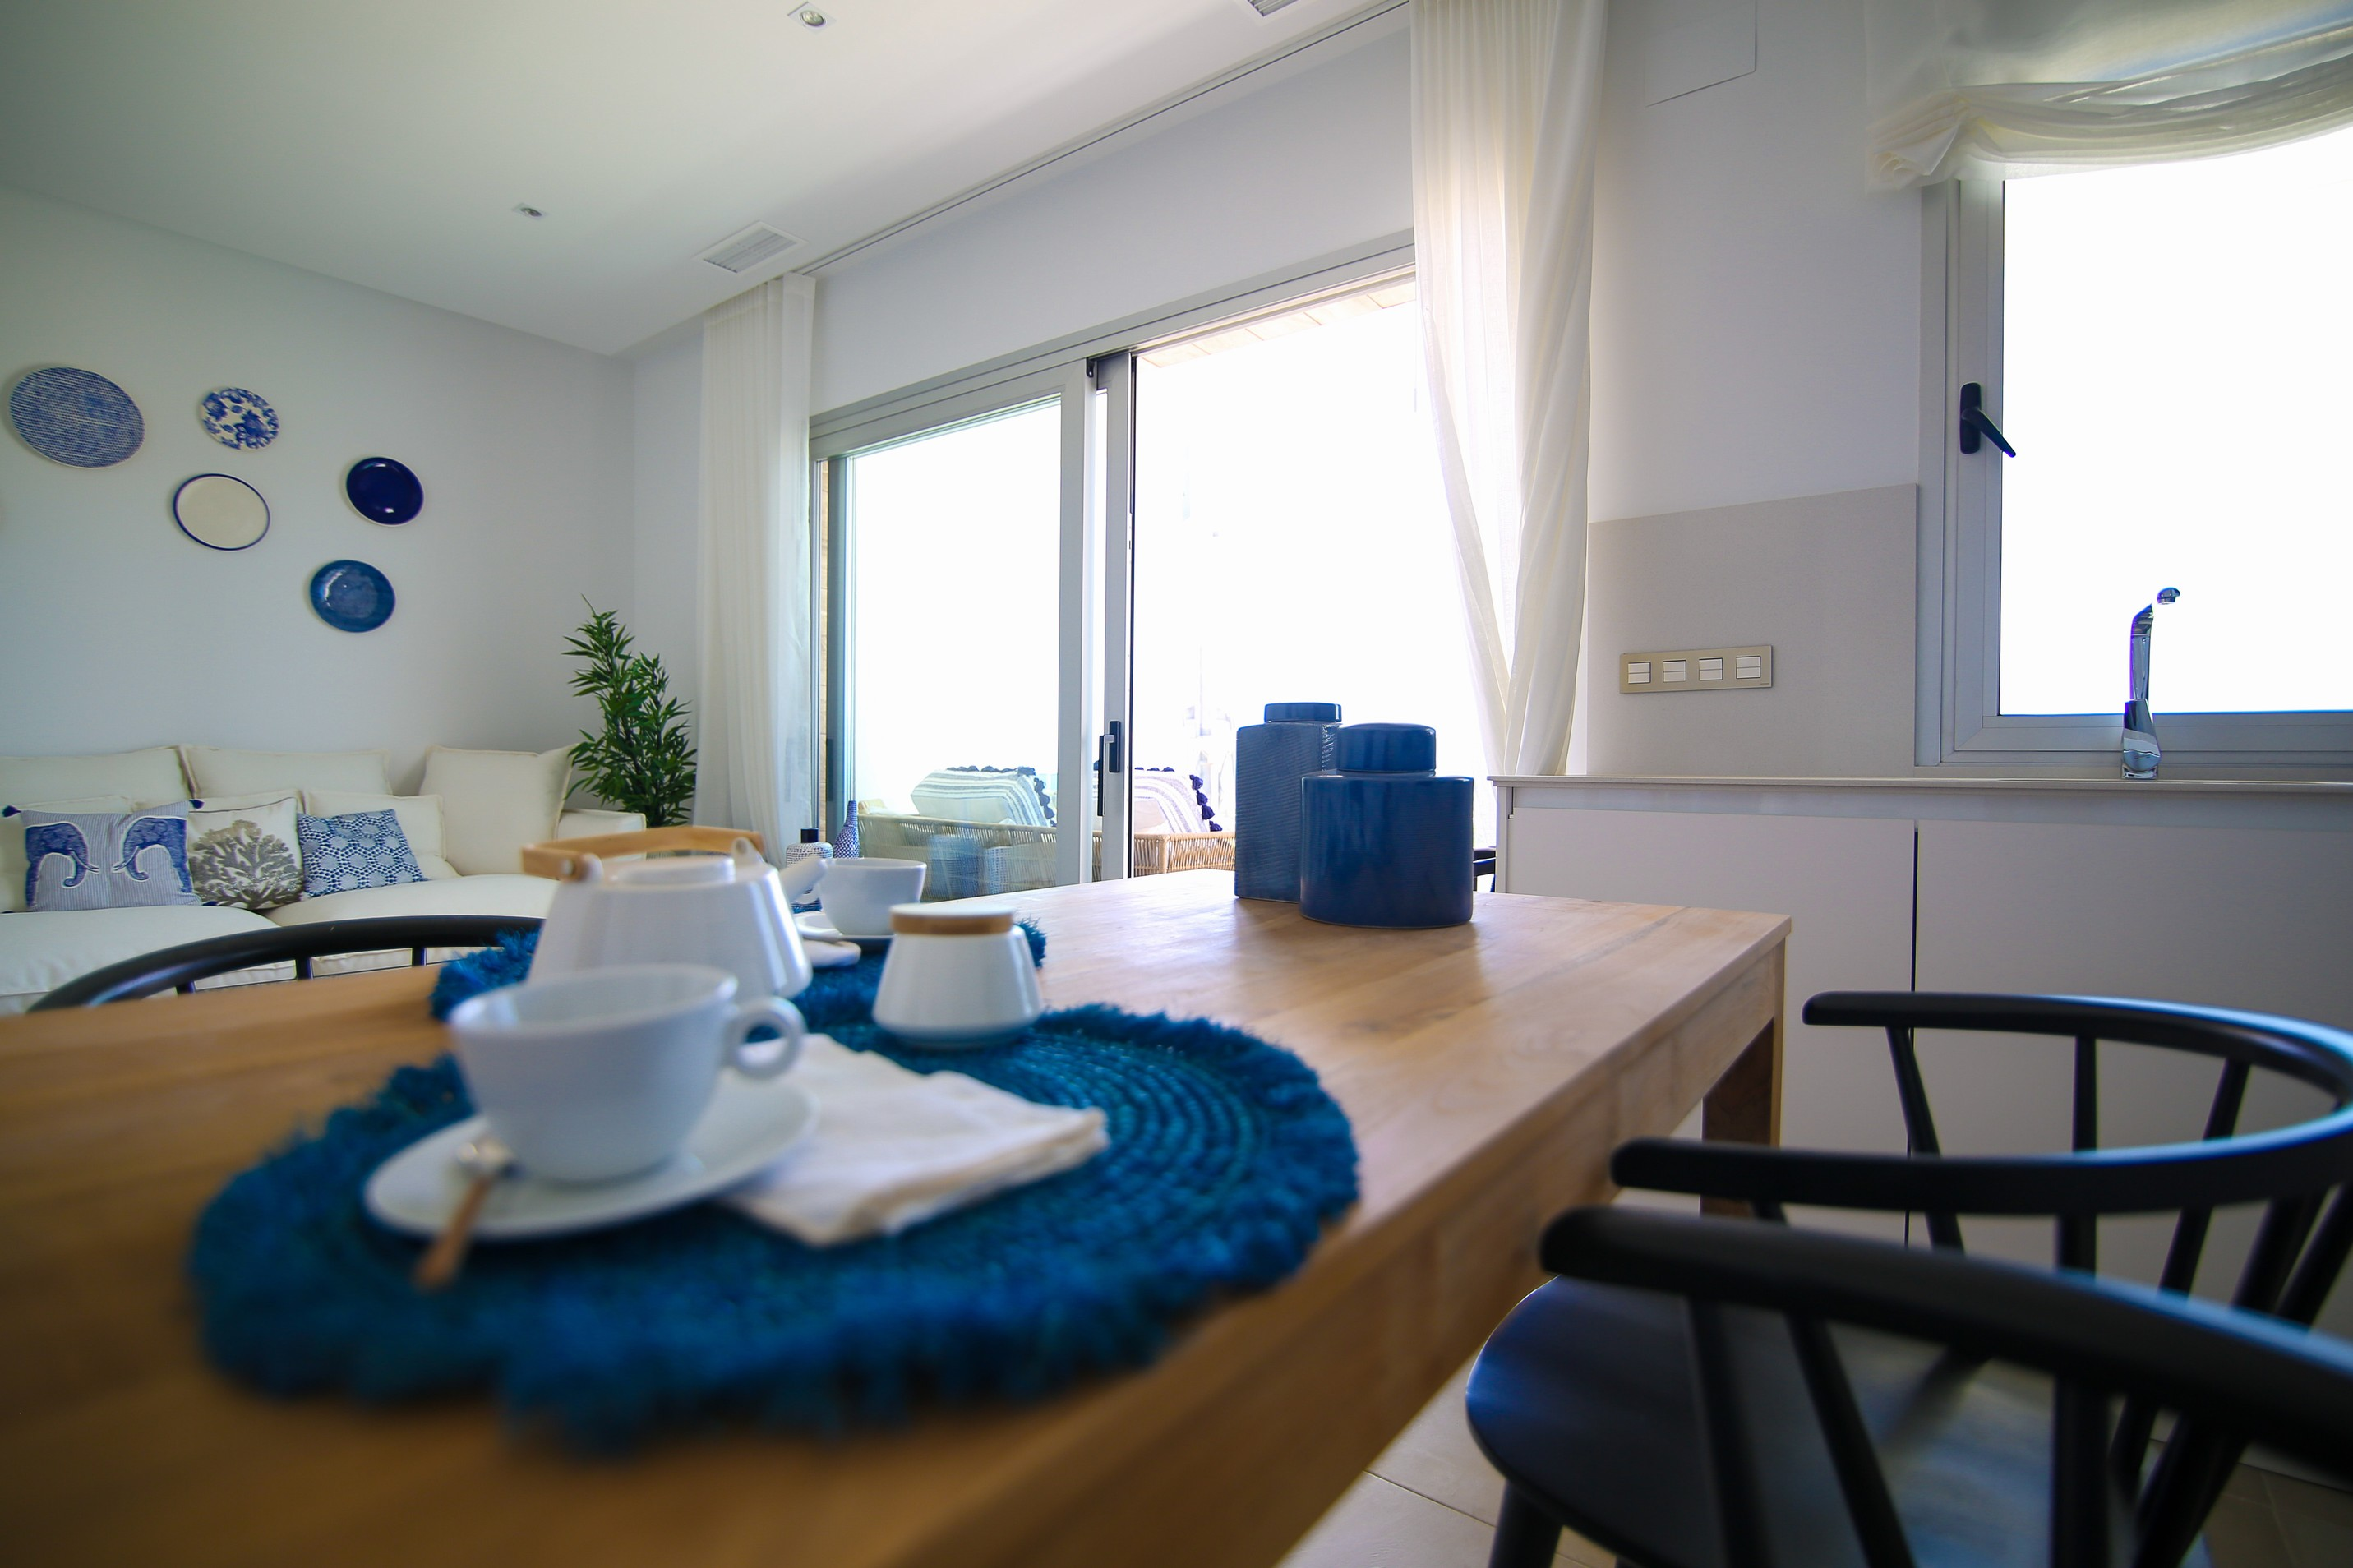 2 bedroom apartment For Sale in Finestrat - photograph 22